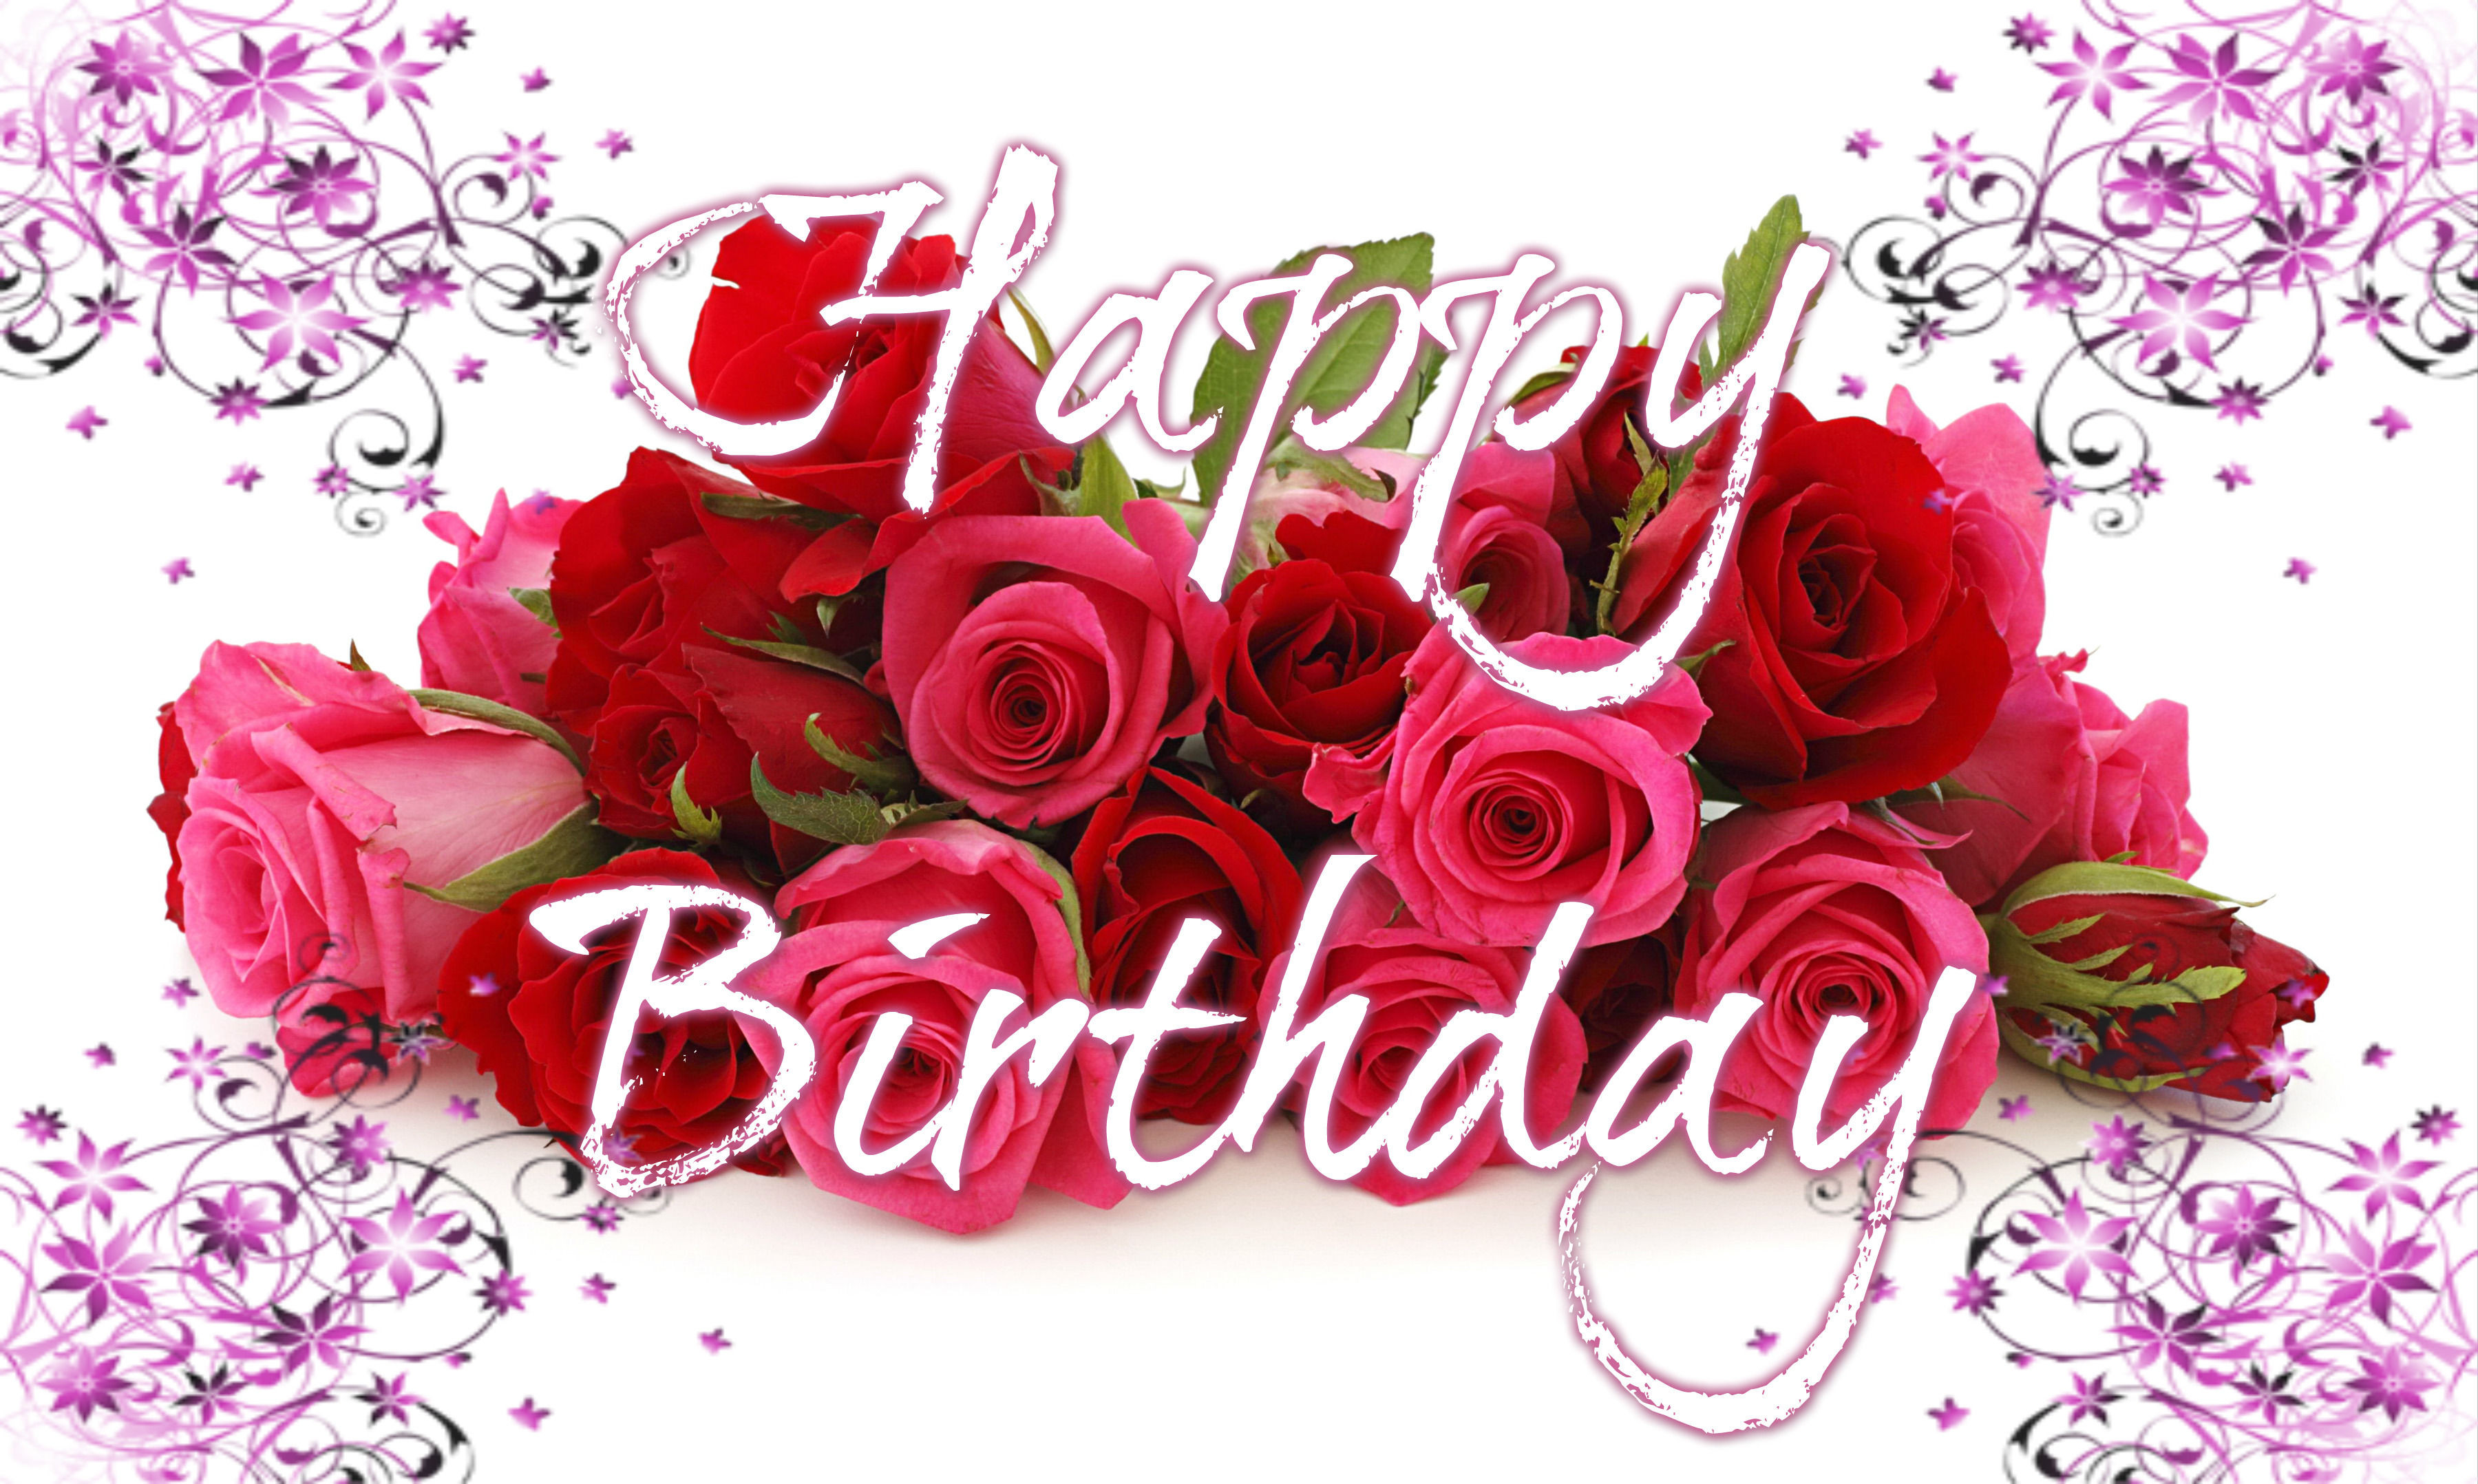 Best ideas about Happy Birthday Wishes Pic . Save or Pin 500 Happy Birthday Happy Birthday Wishes Now.